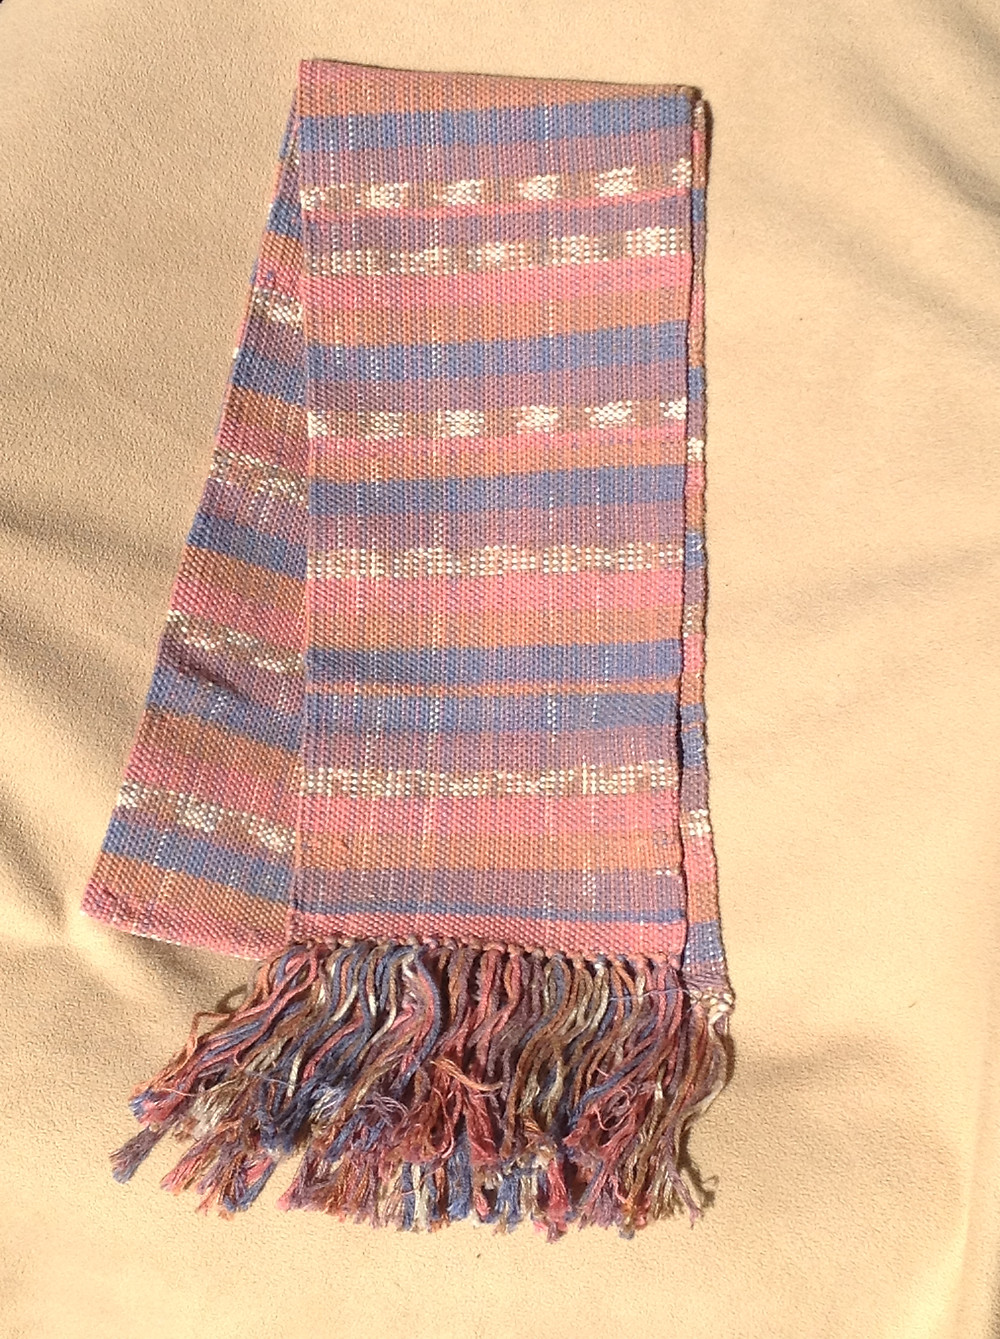 First scarf I ever wove.